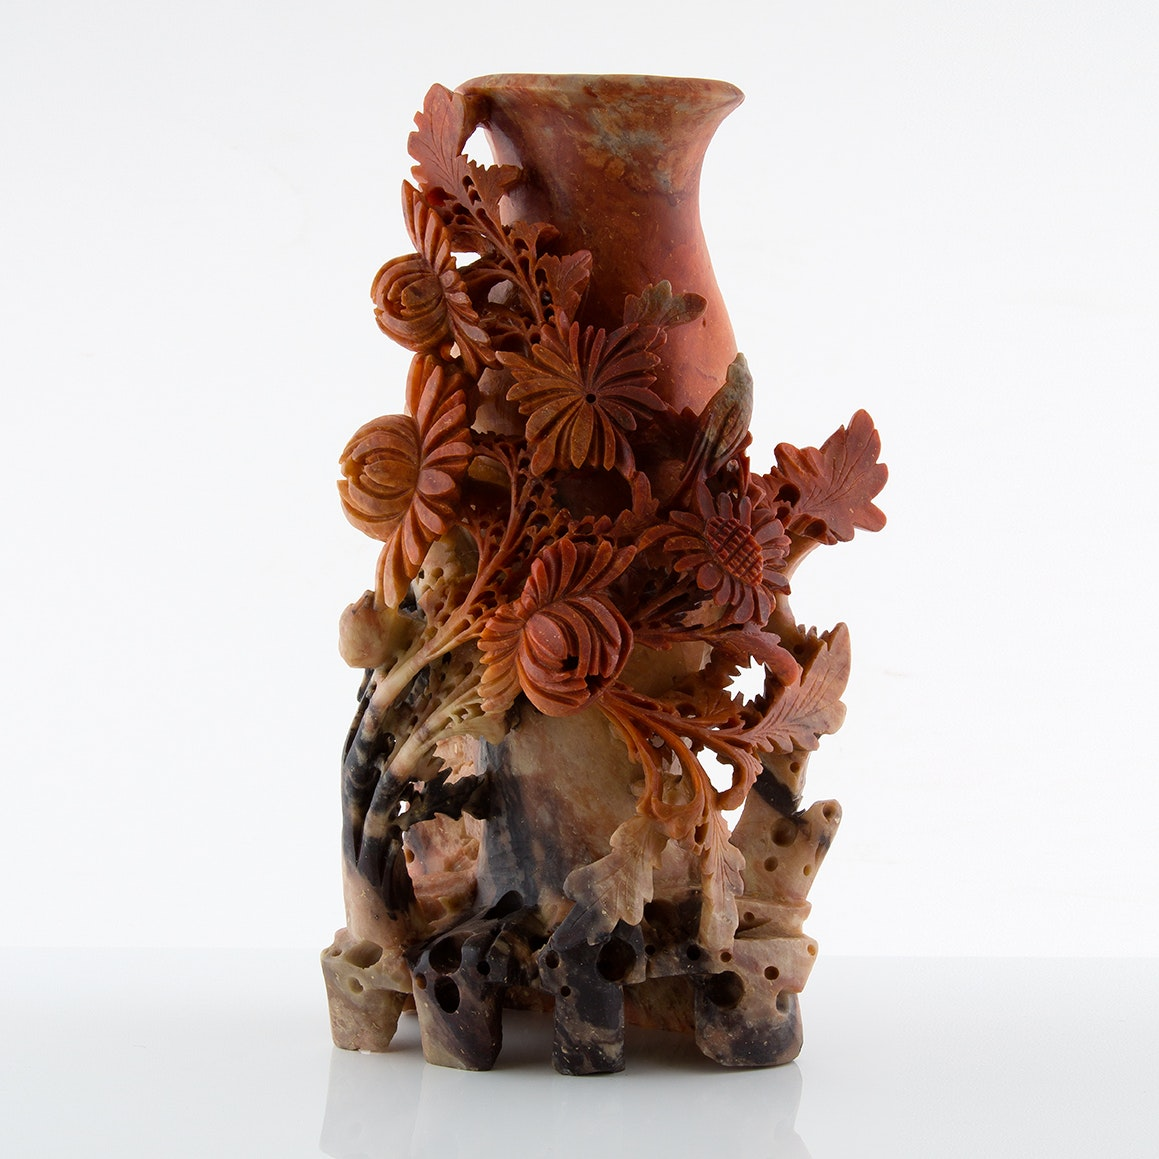 Carved Soapstone Sculpture Vase